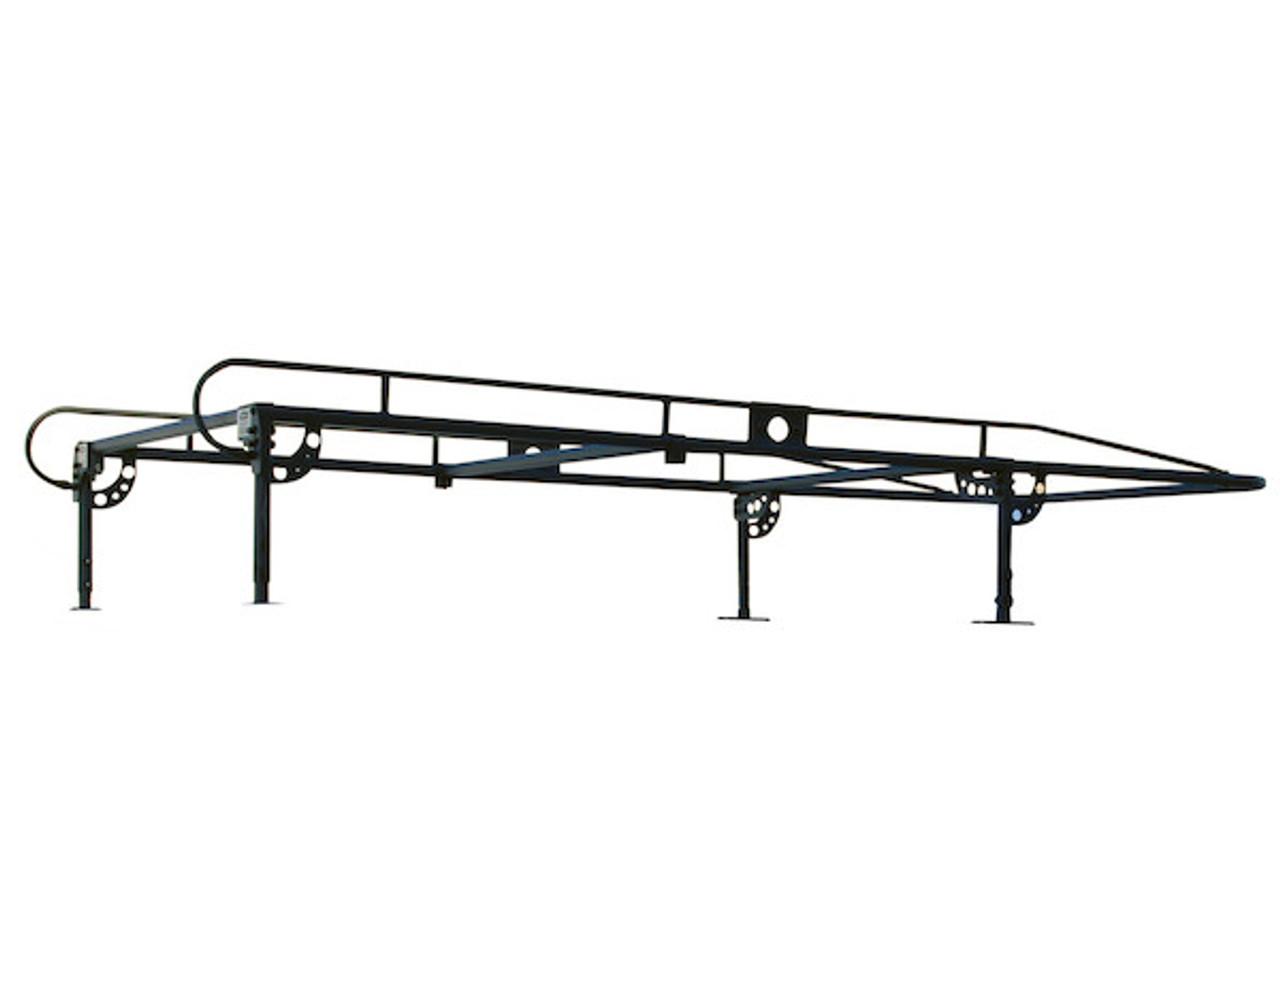 BUYERS 1501250 13-1/2 Foot Black Service Body Ladder Rack for Movers, Contractors, Construction, Painters Picture # 1